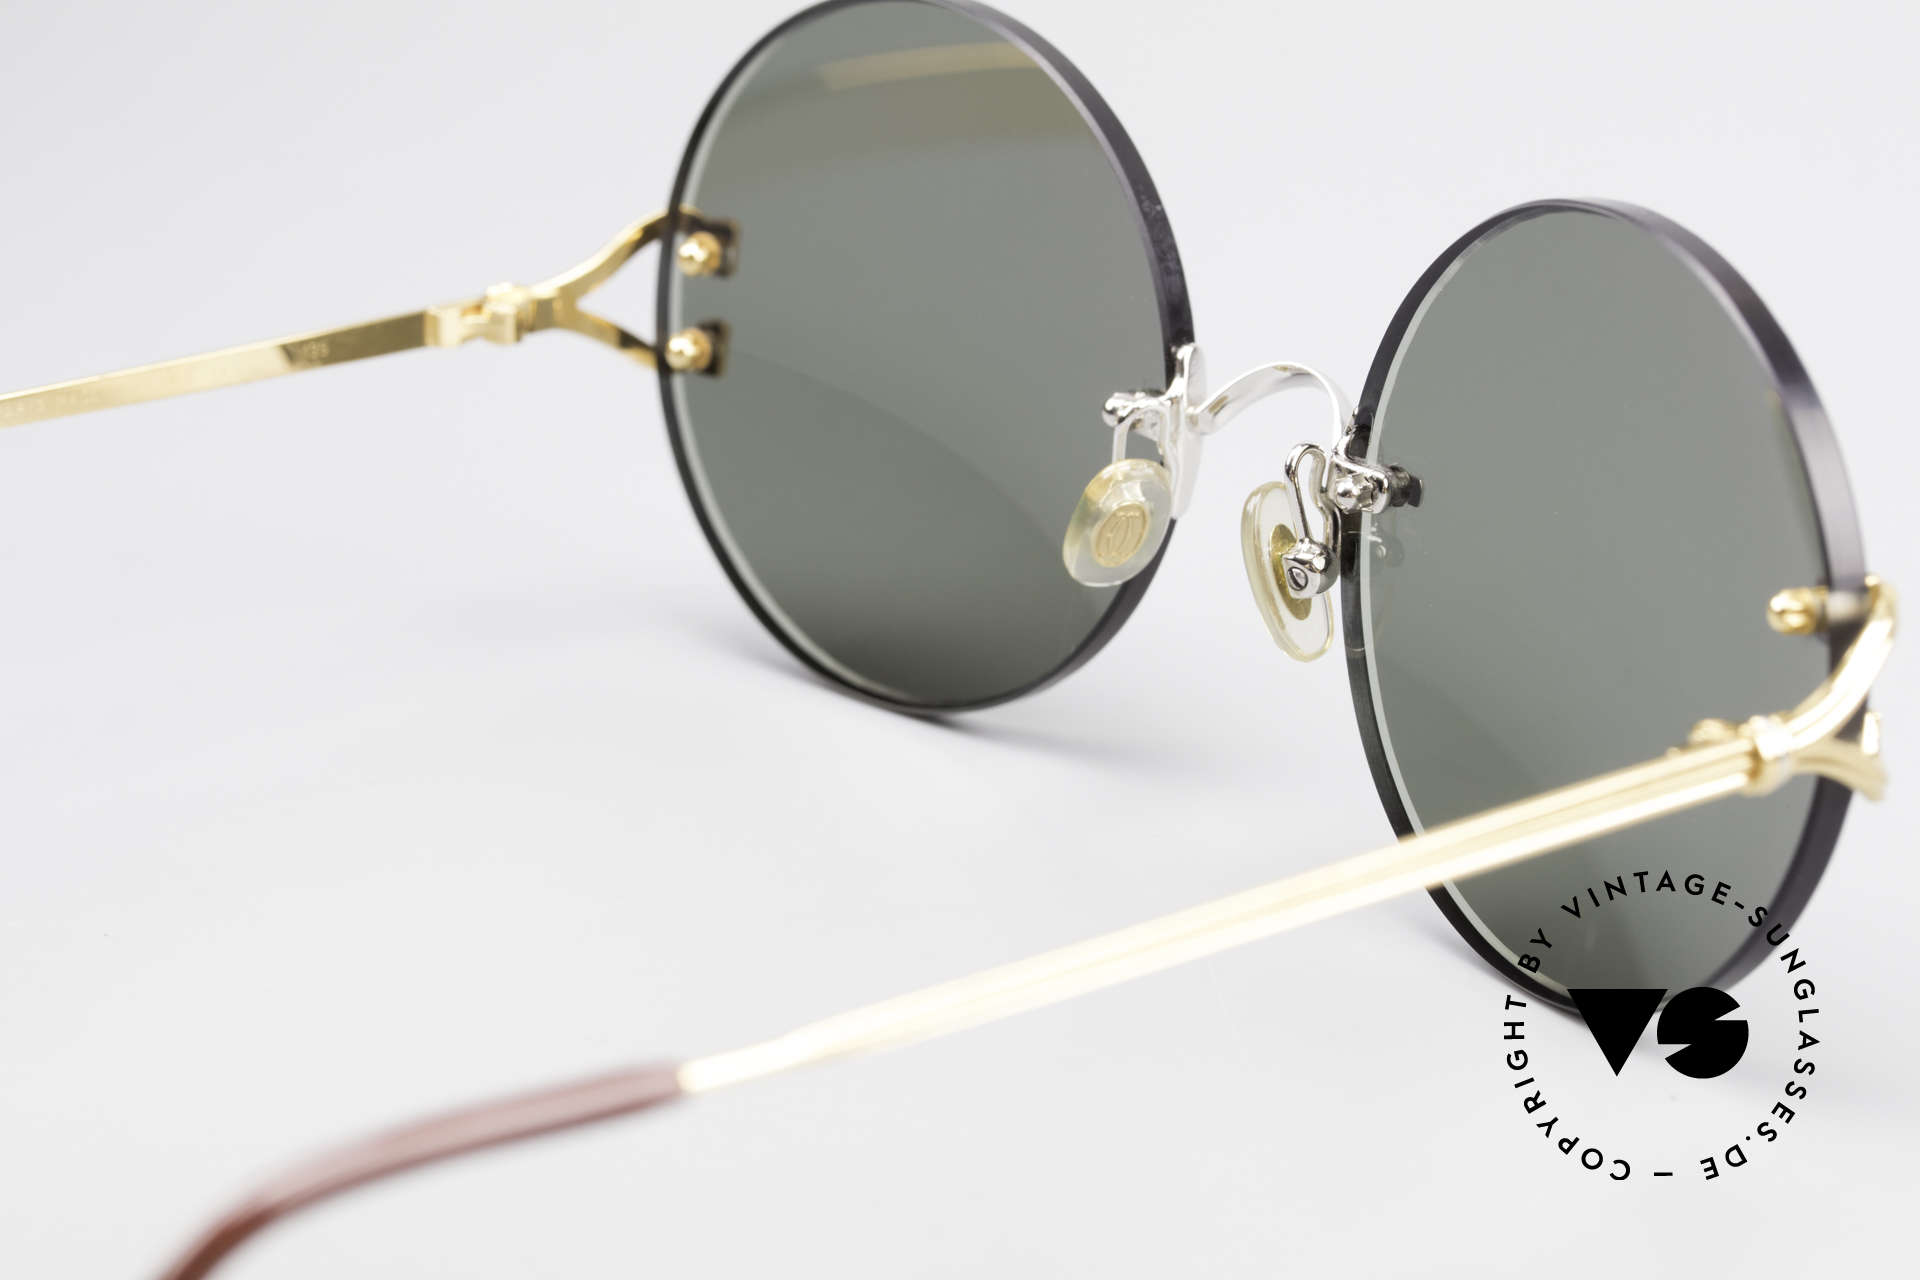 Cartier Madison Round Customized Sunglasses, CUSTOMIZED bicolor edition (gold with silver bridge), Made for Men and Women